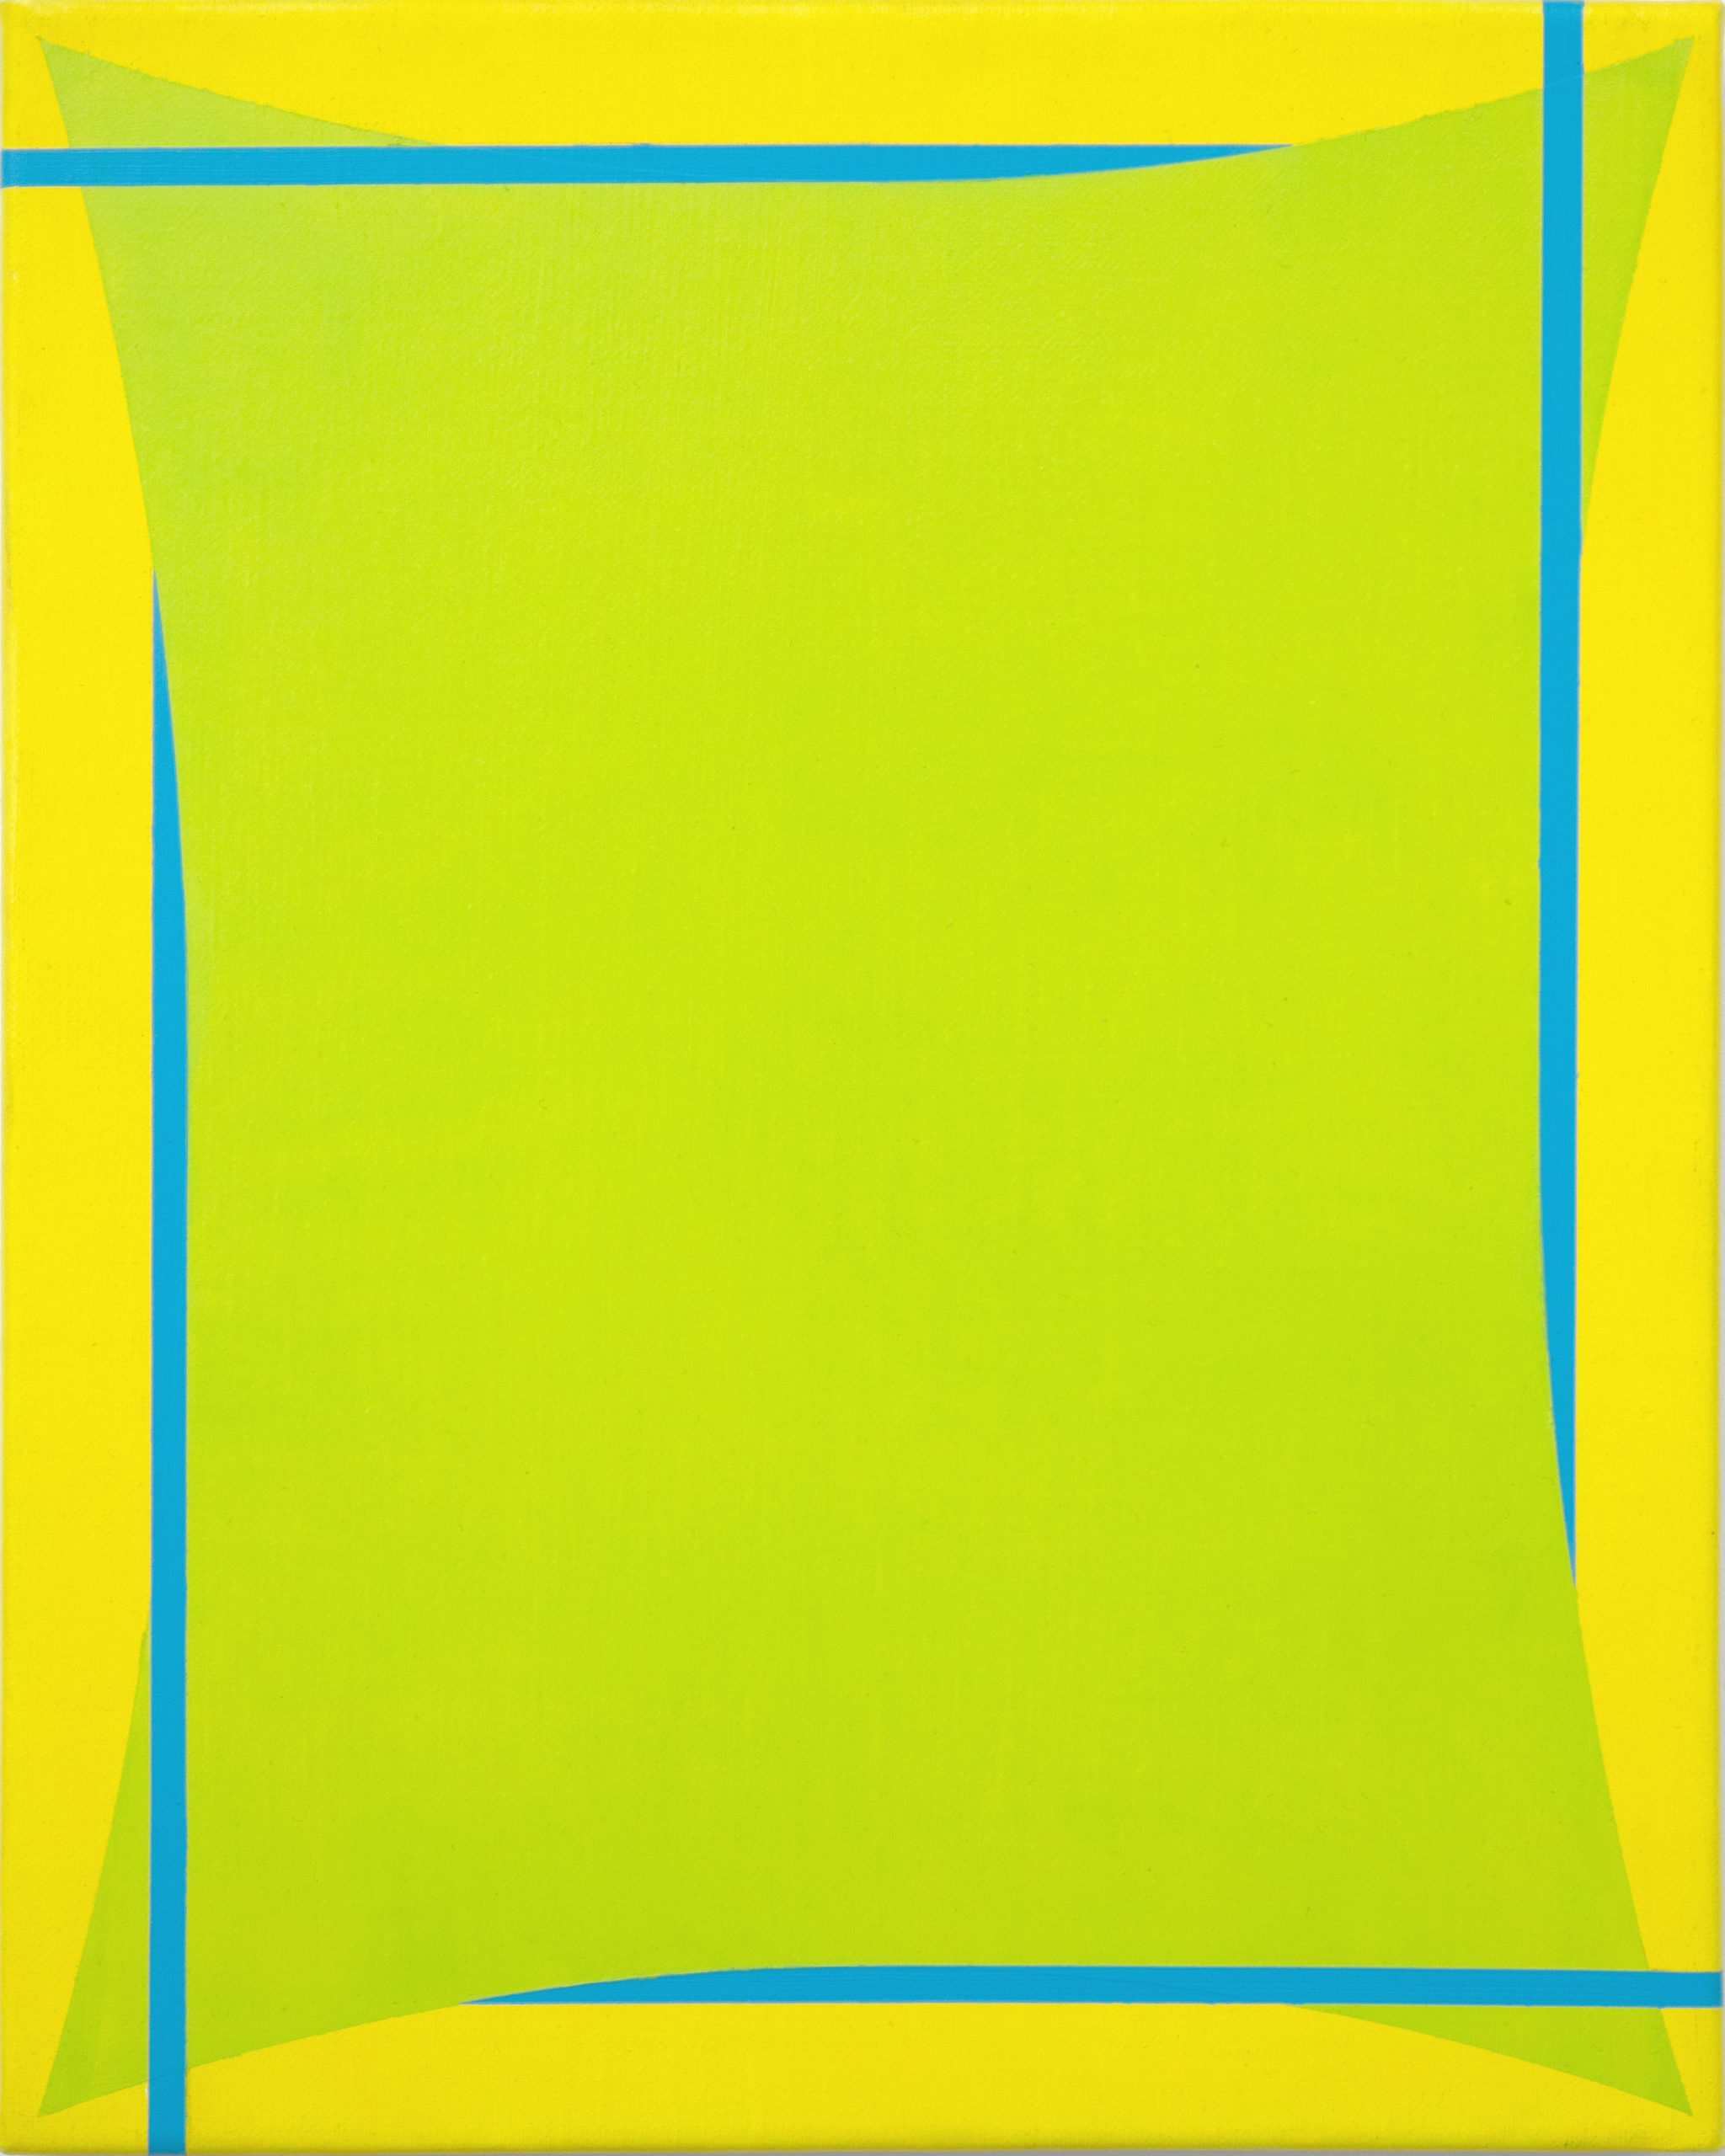 Untitled (Yellow Green Blue)